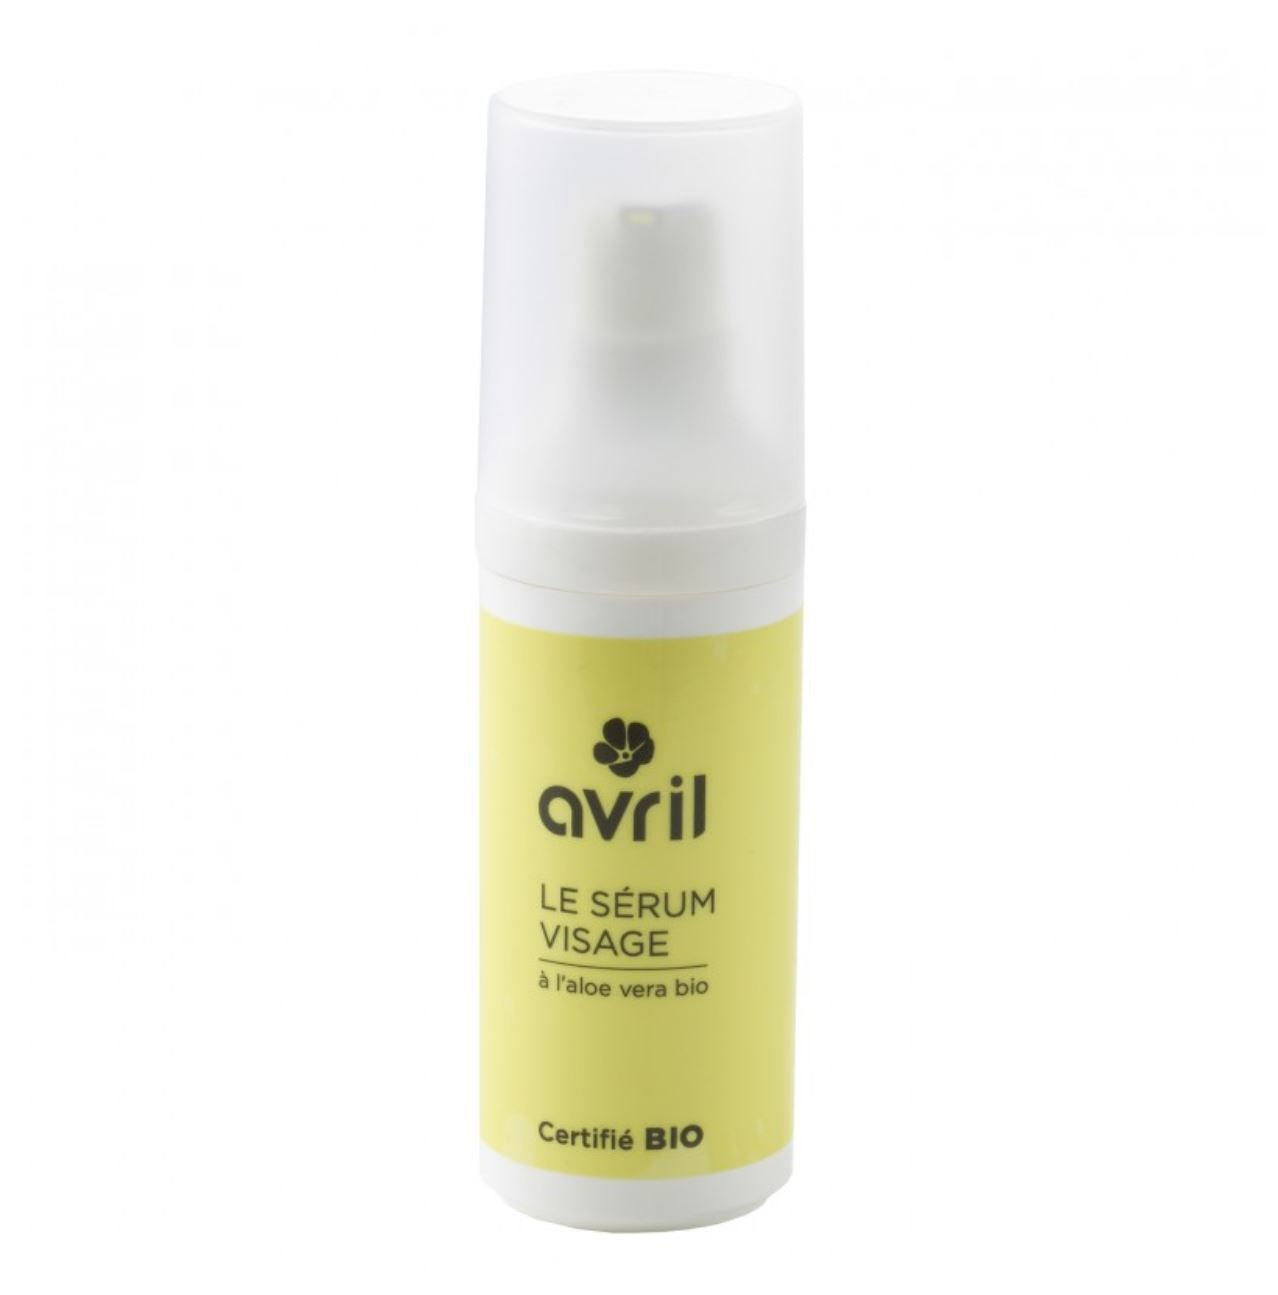 AVRIL FACE SERUM 30ml - certified organic by ECOCERT